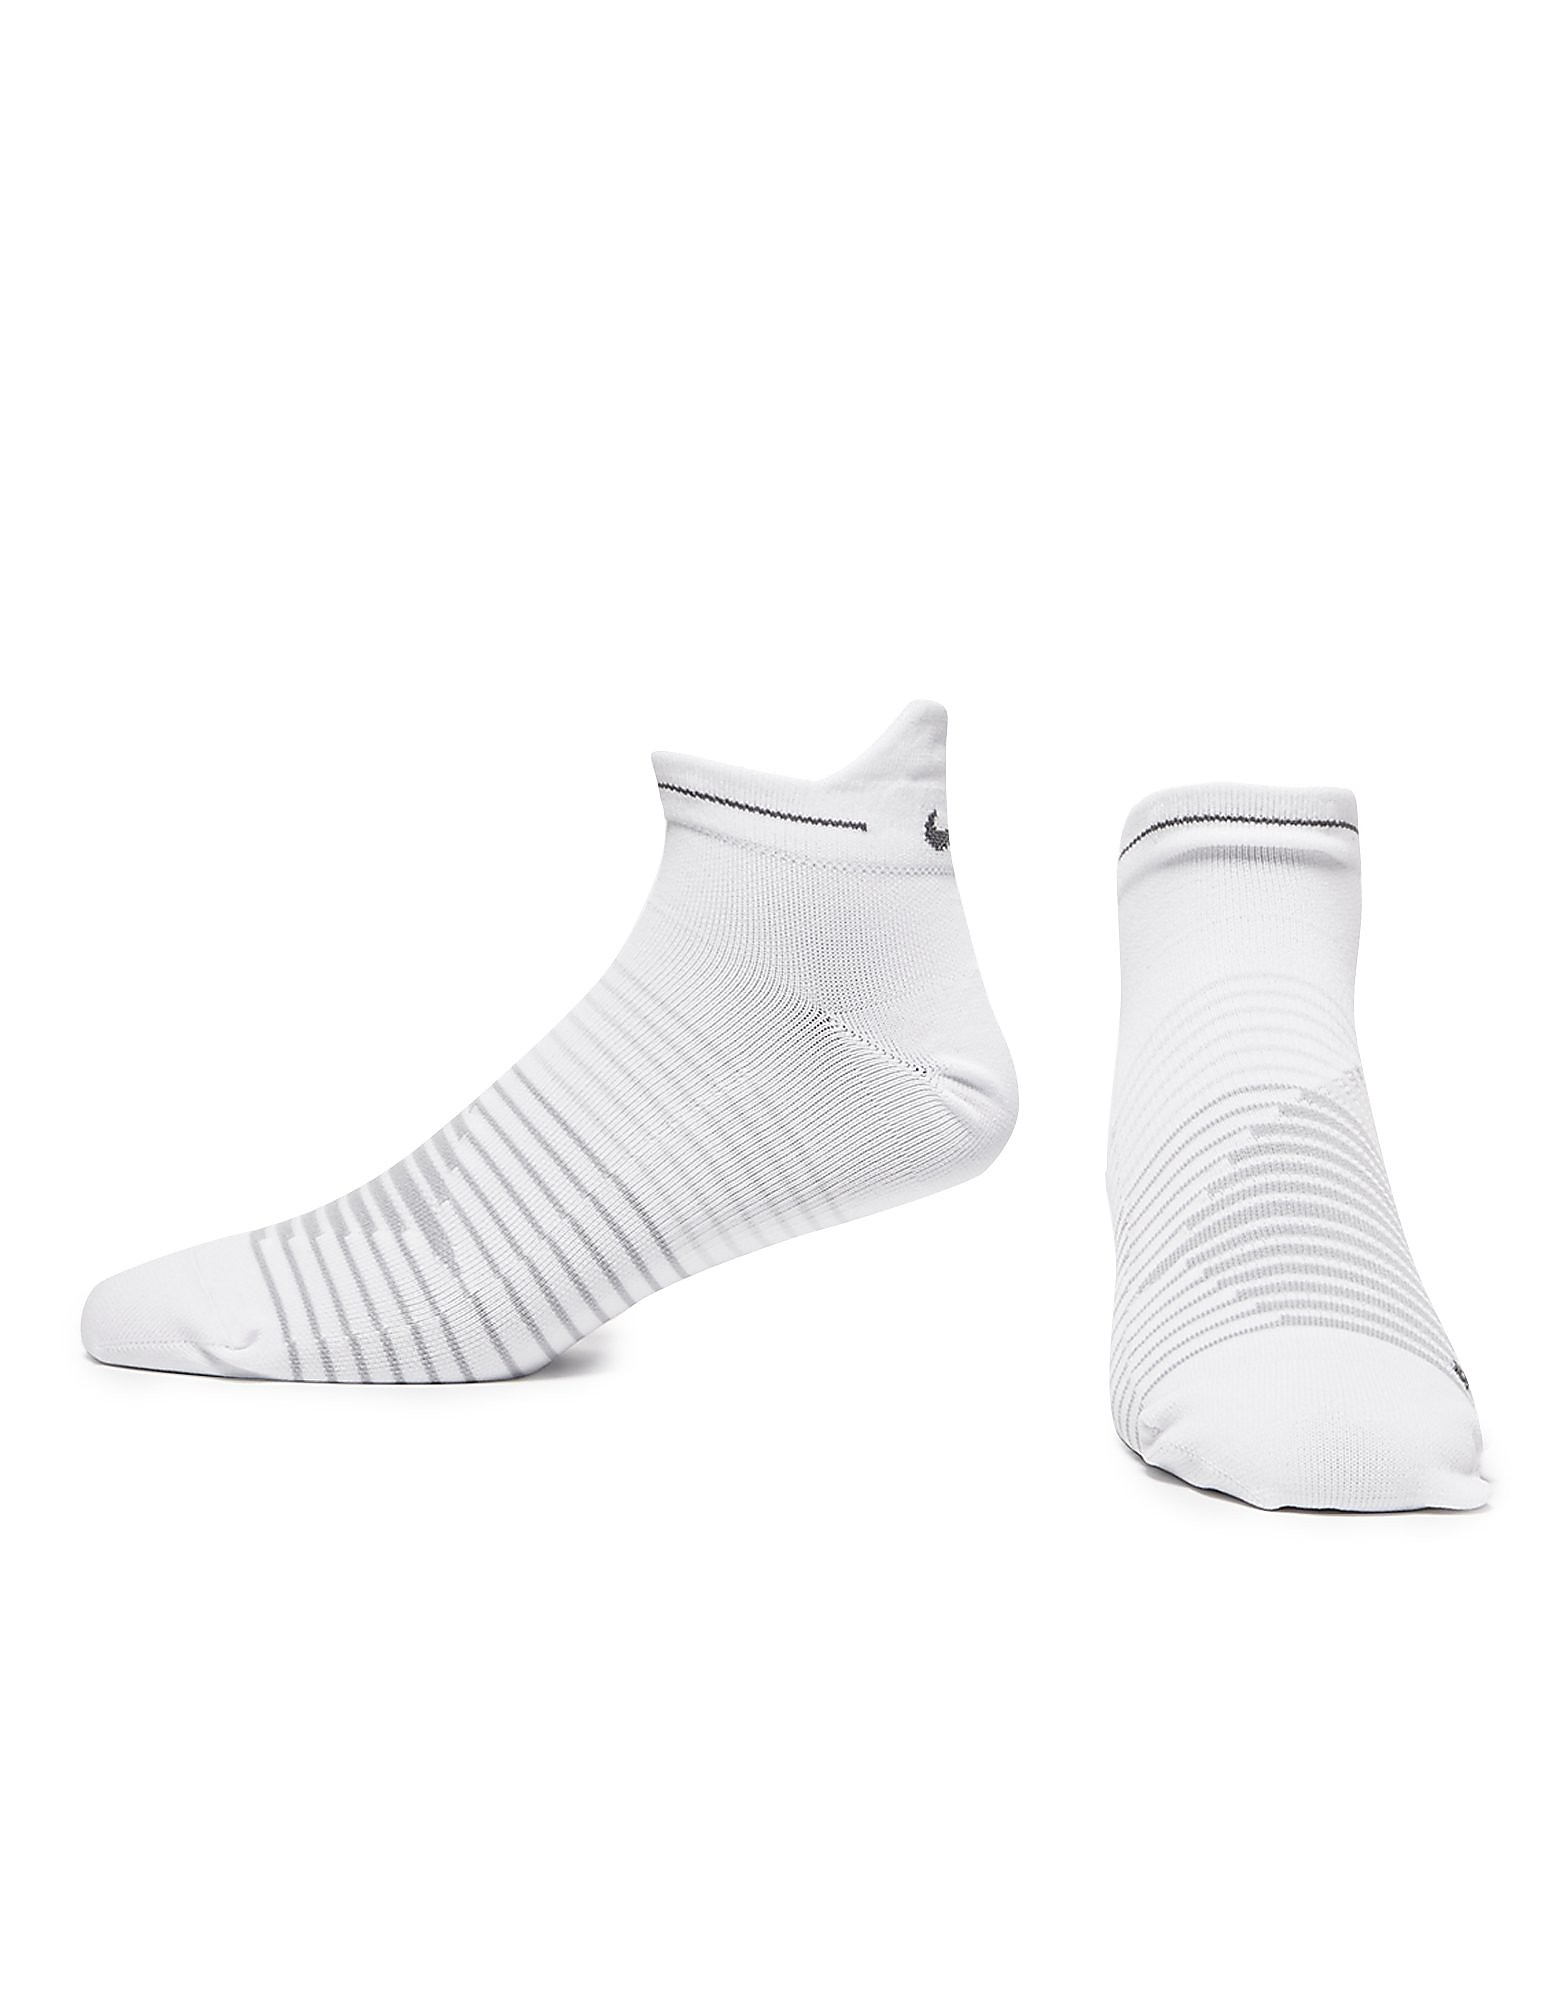 Nike Run Performance Lightweight Socks